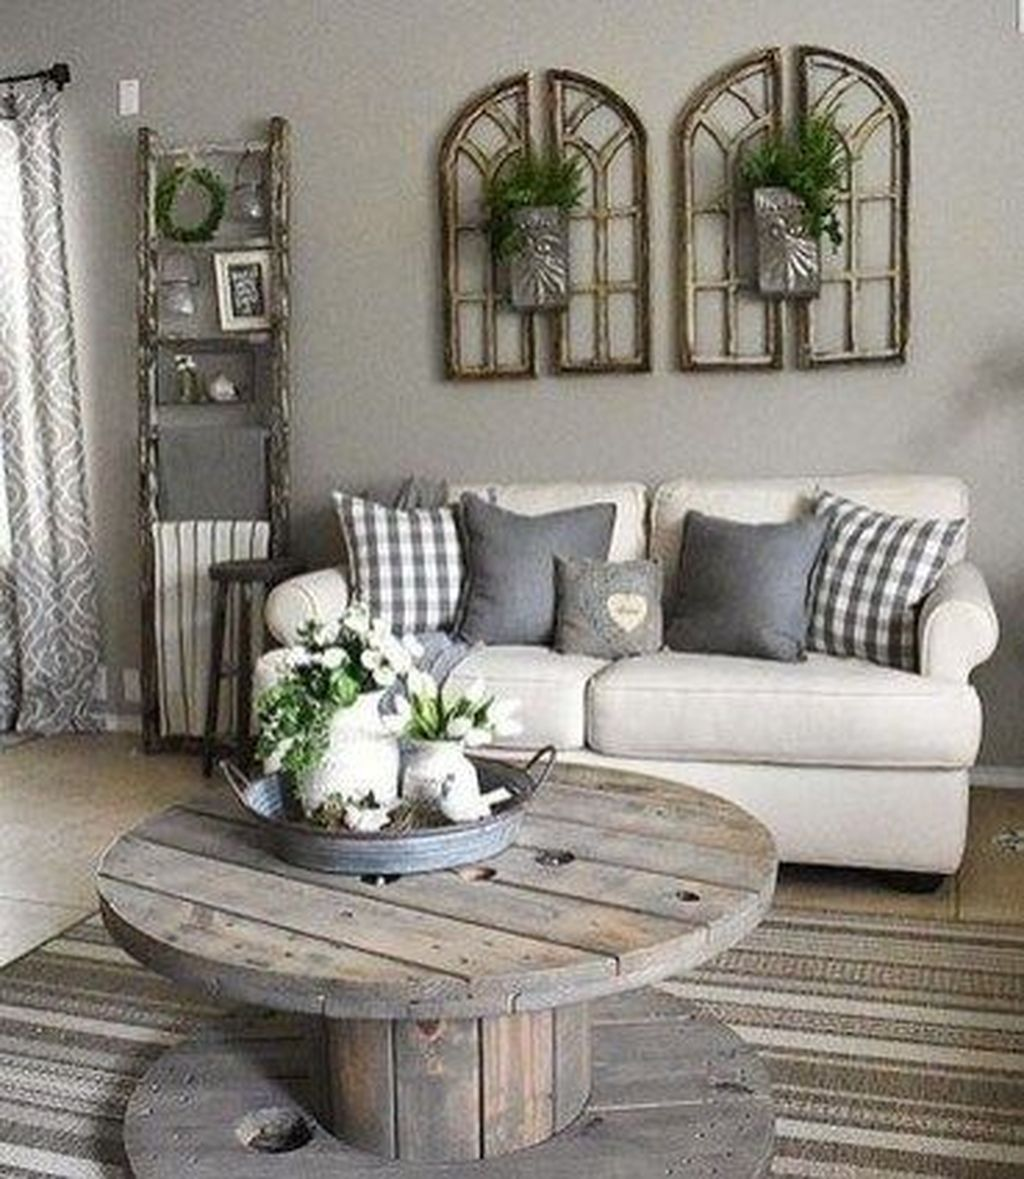 Admirable Farmhouse Living Room Decor Ideas 09